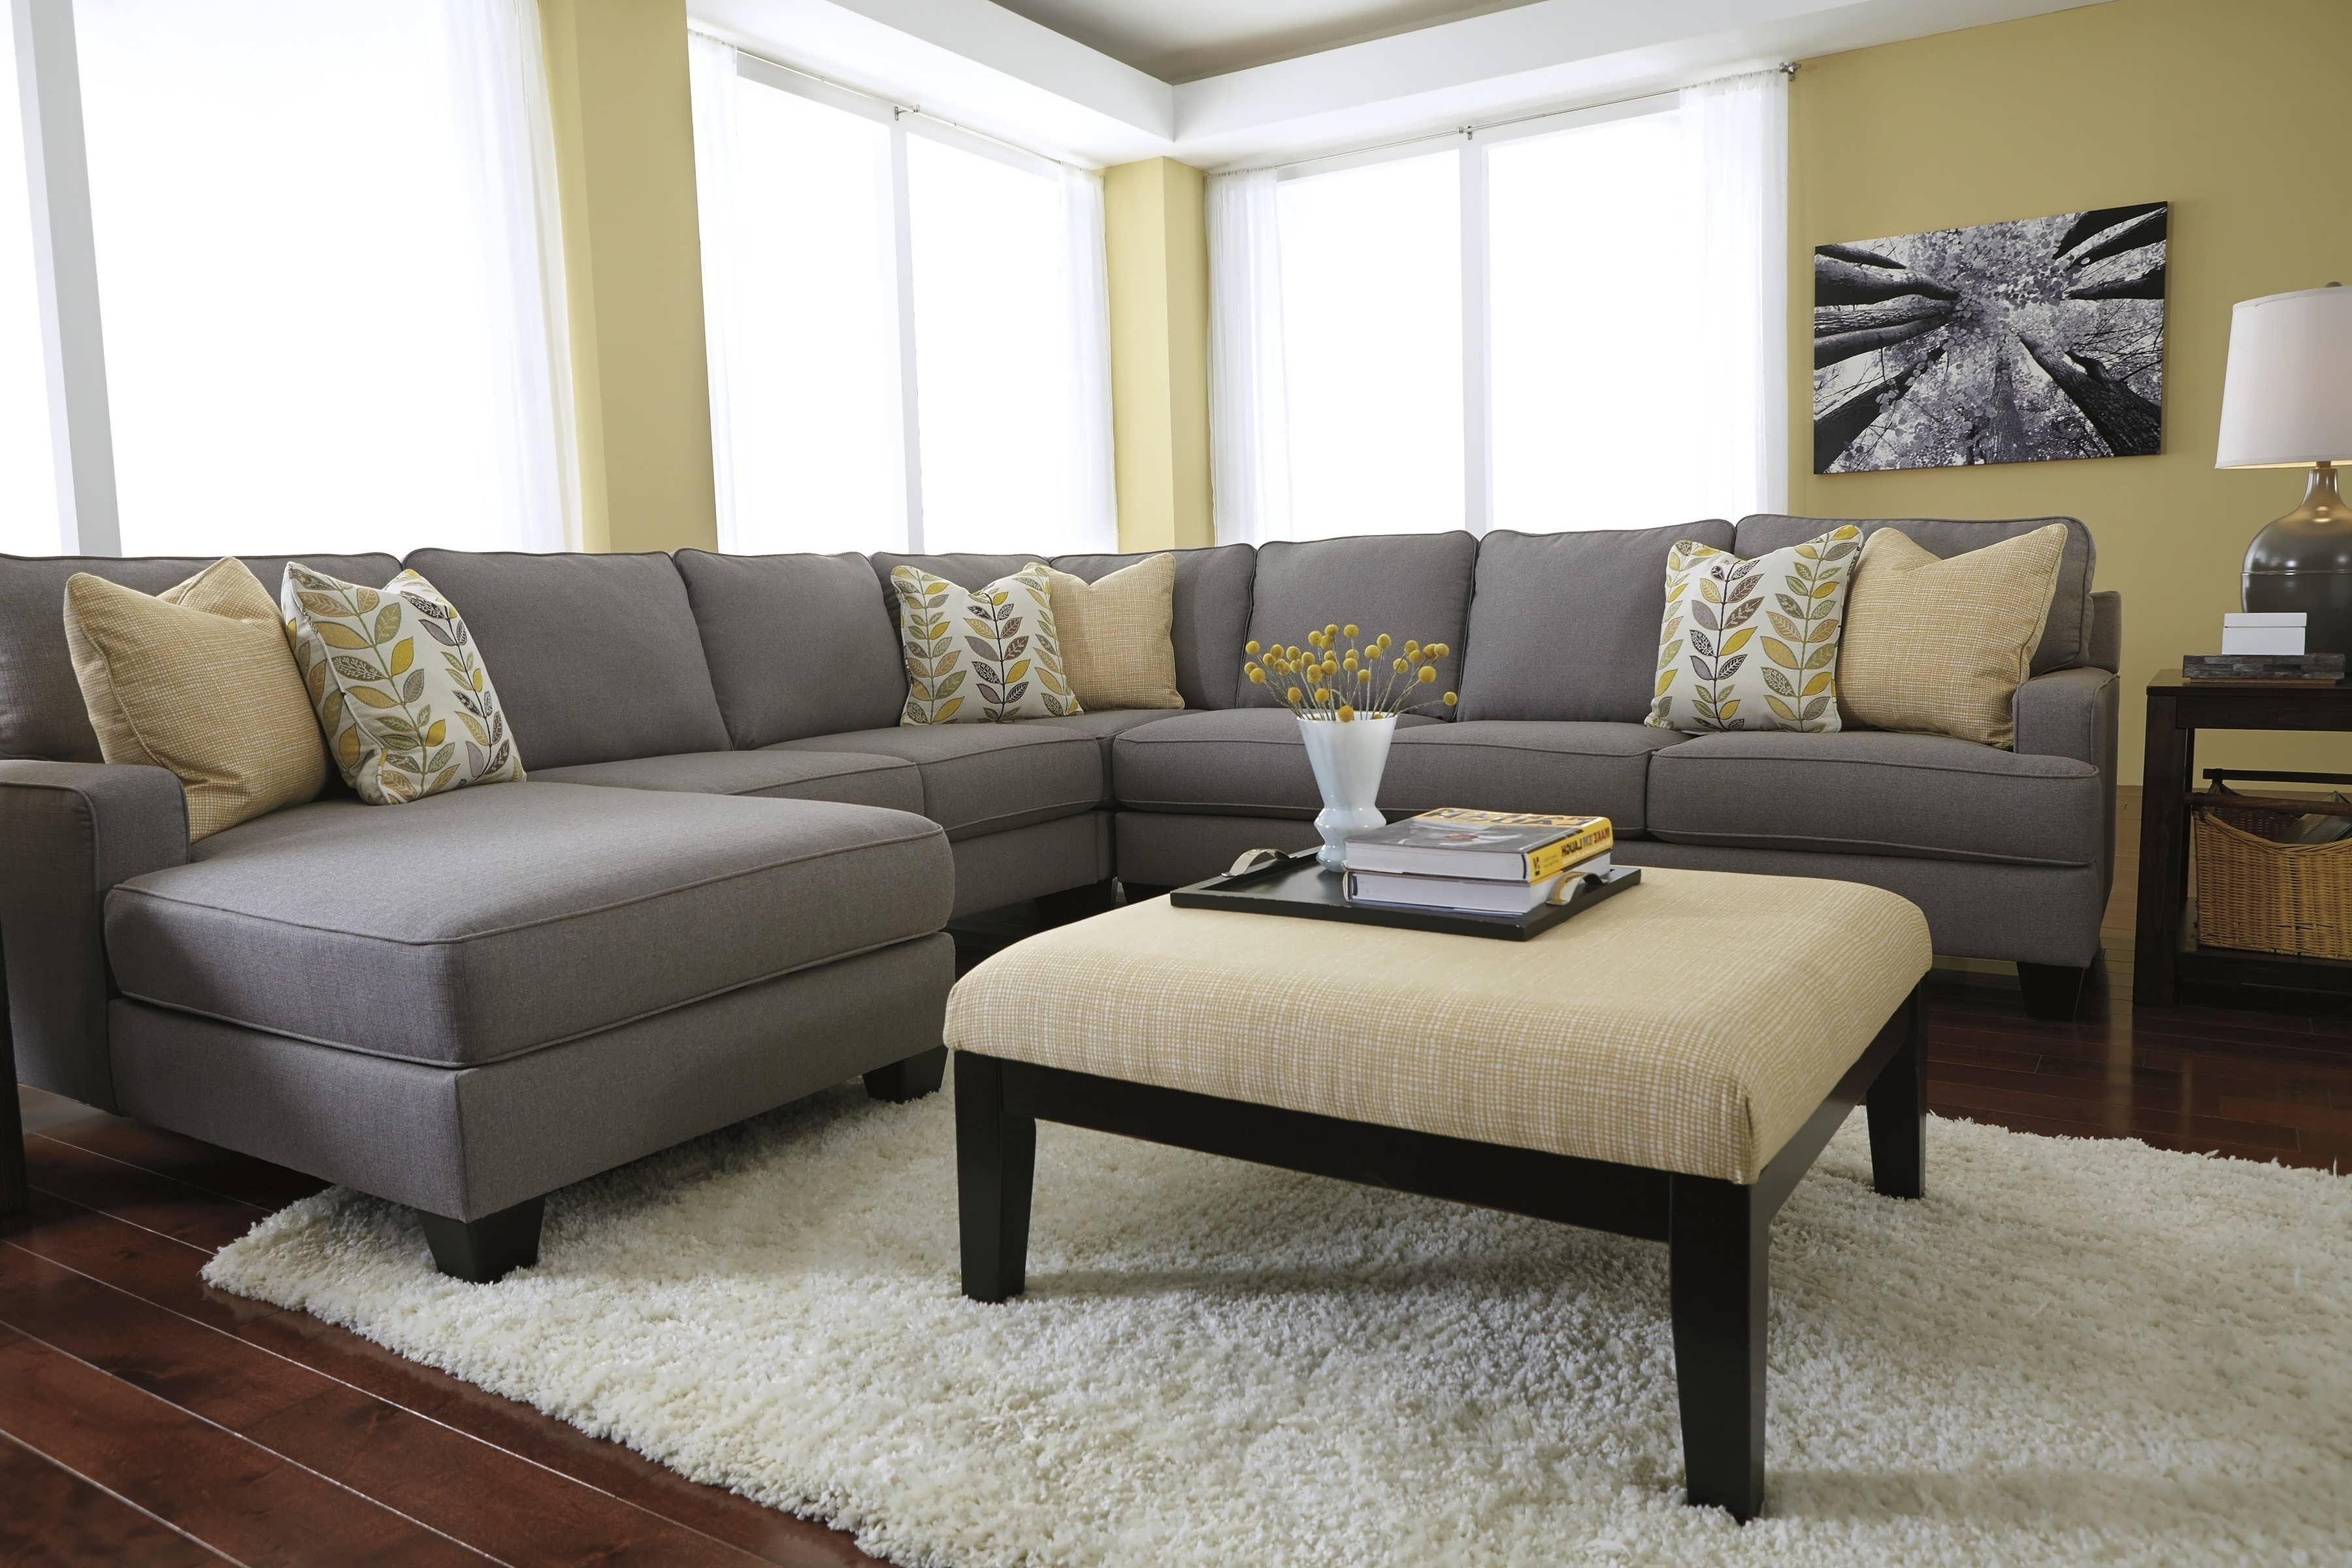 2017 Sofa : Sectional Sofas Gray Sectional With Chaise Grey Sectionals Intended For Gray Sectional Sofas With Chaise (View 13 of 15)